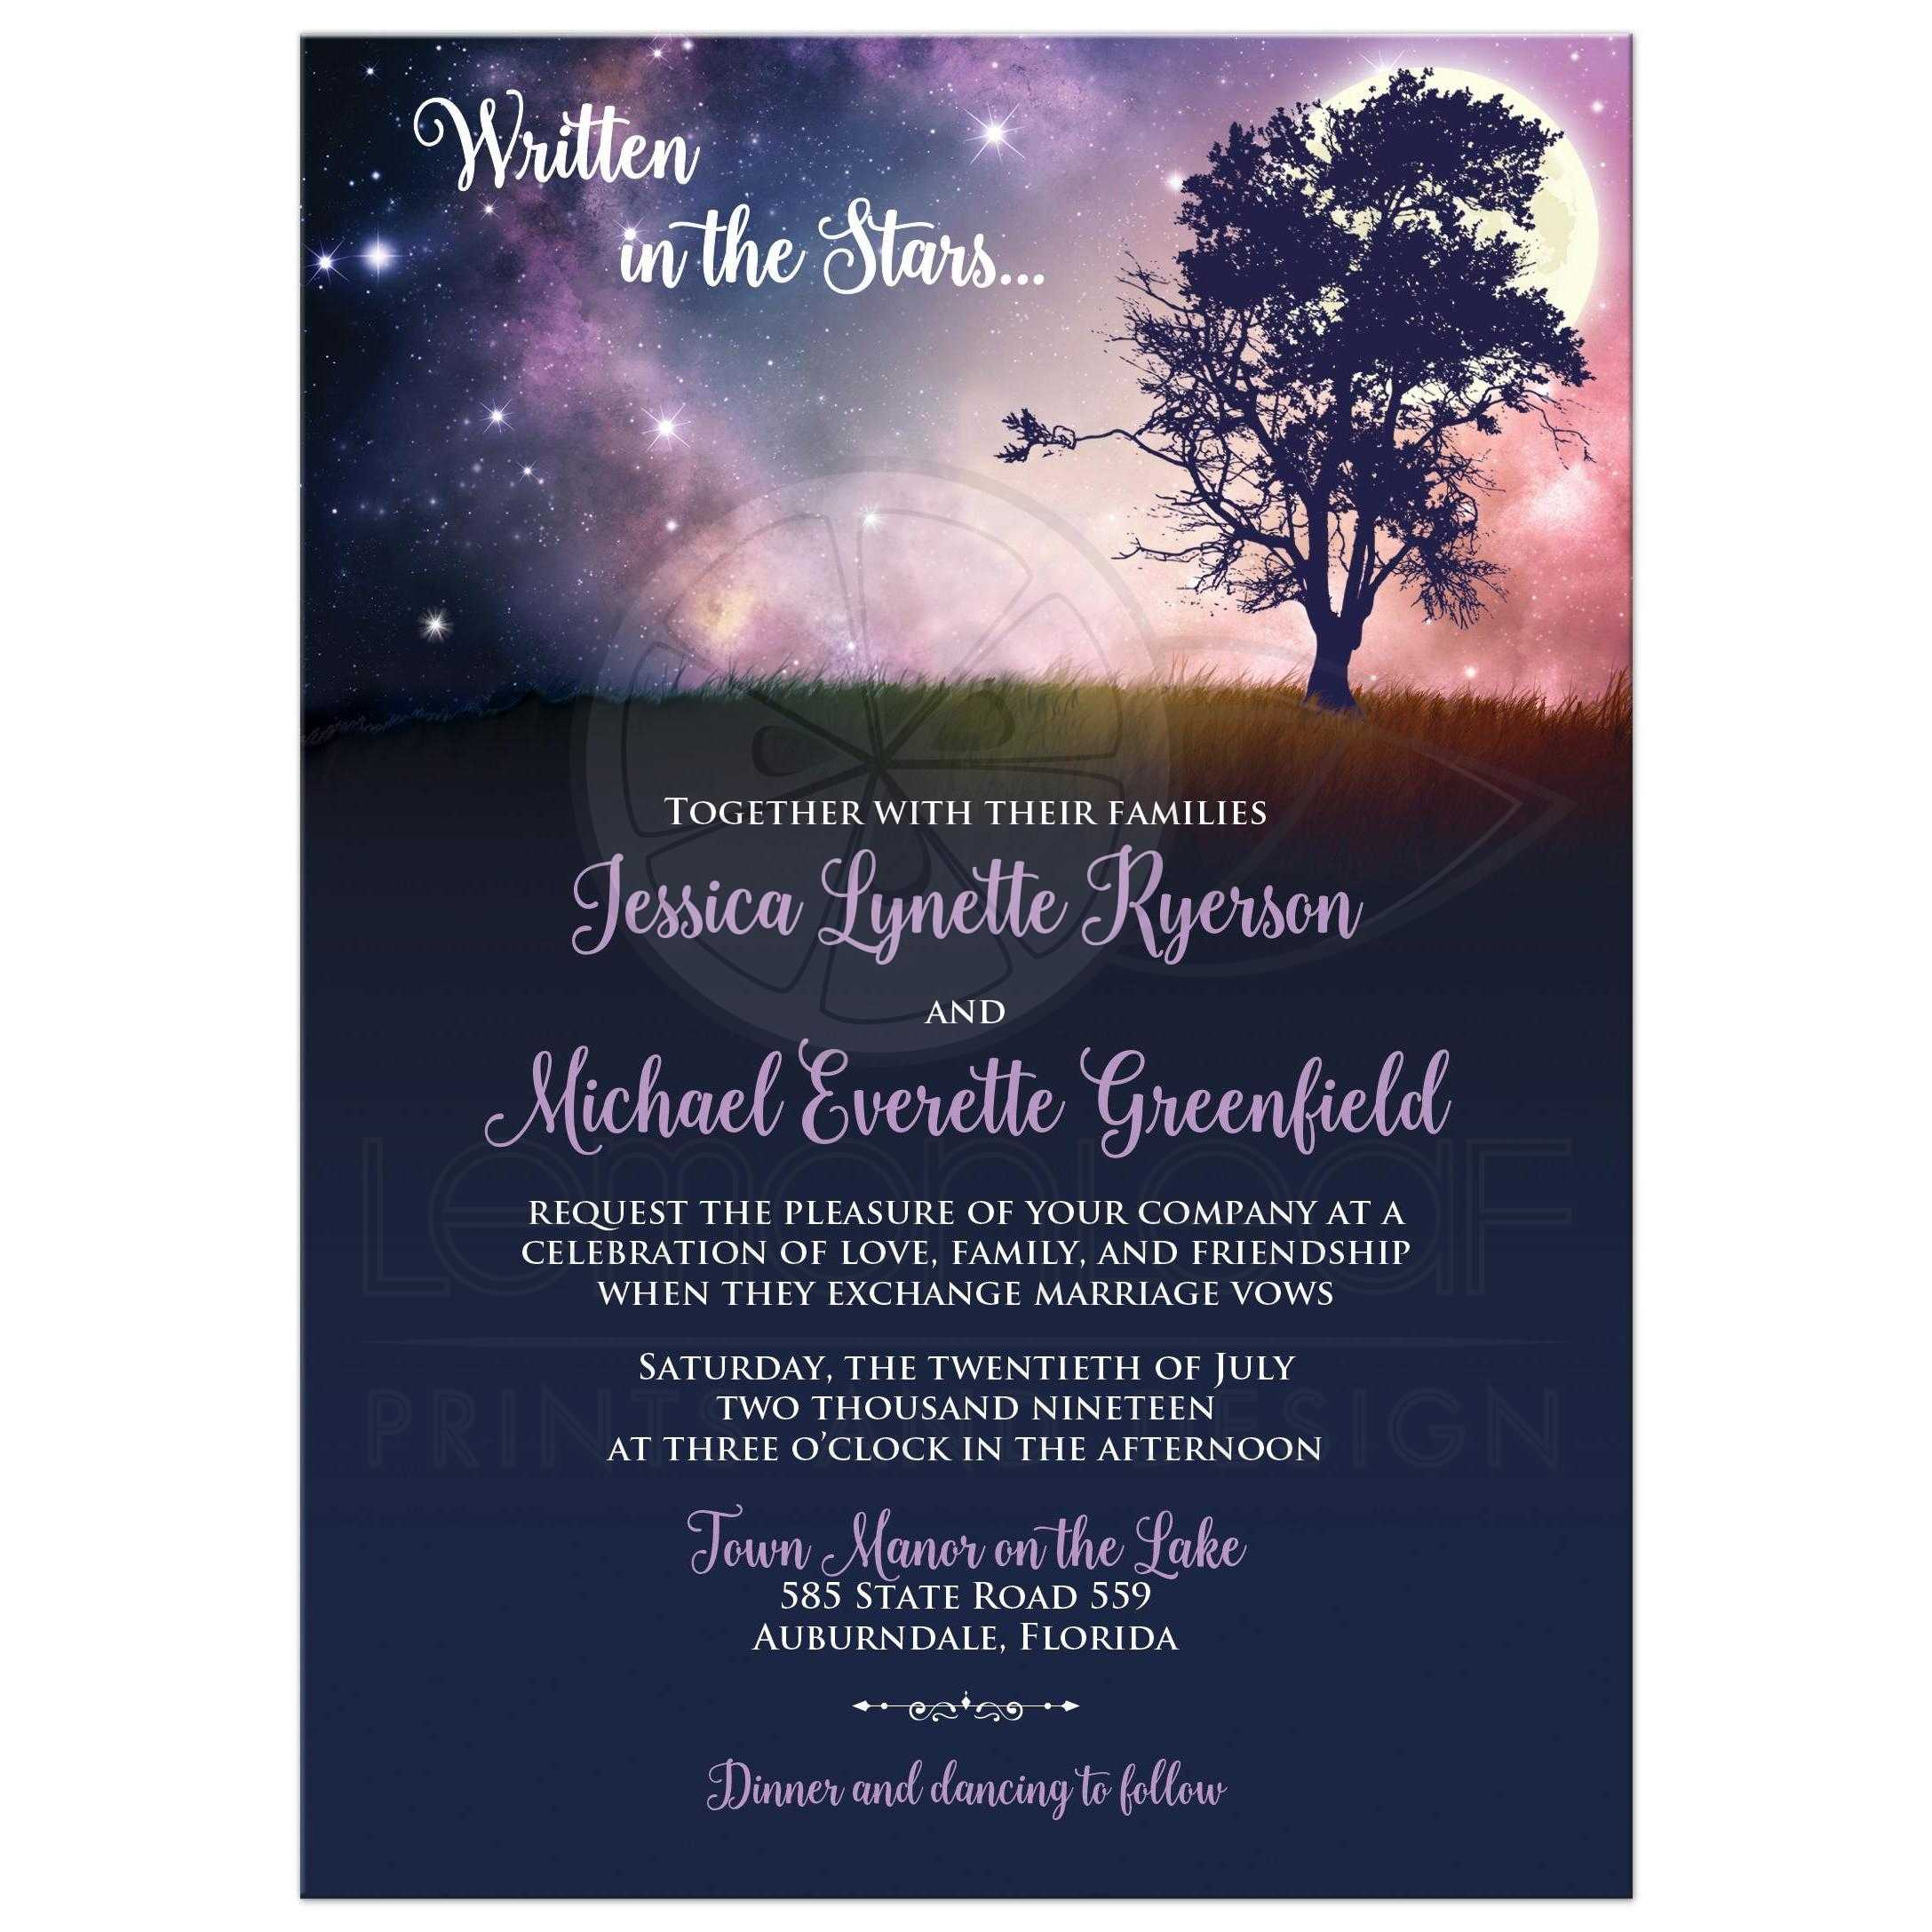 Written in the Stars Wedding Invitation with Full Moon and Tree